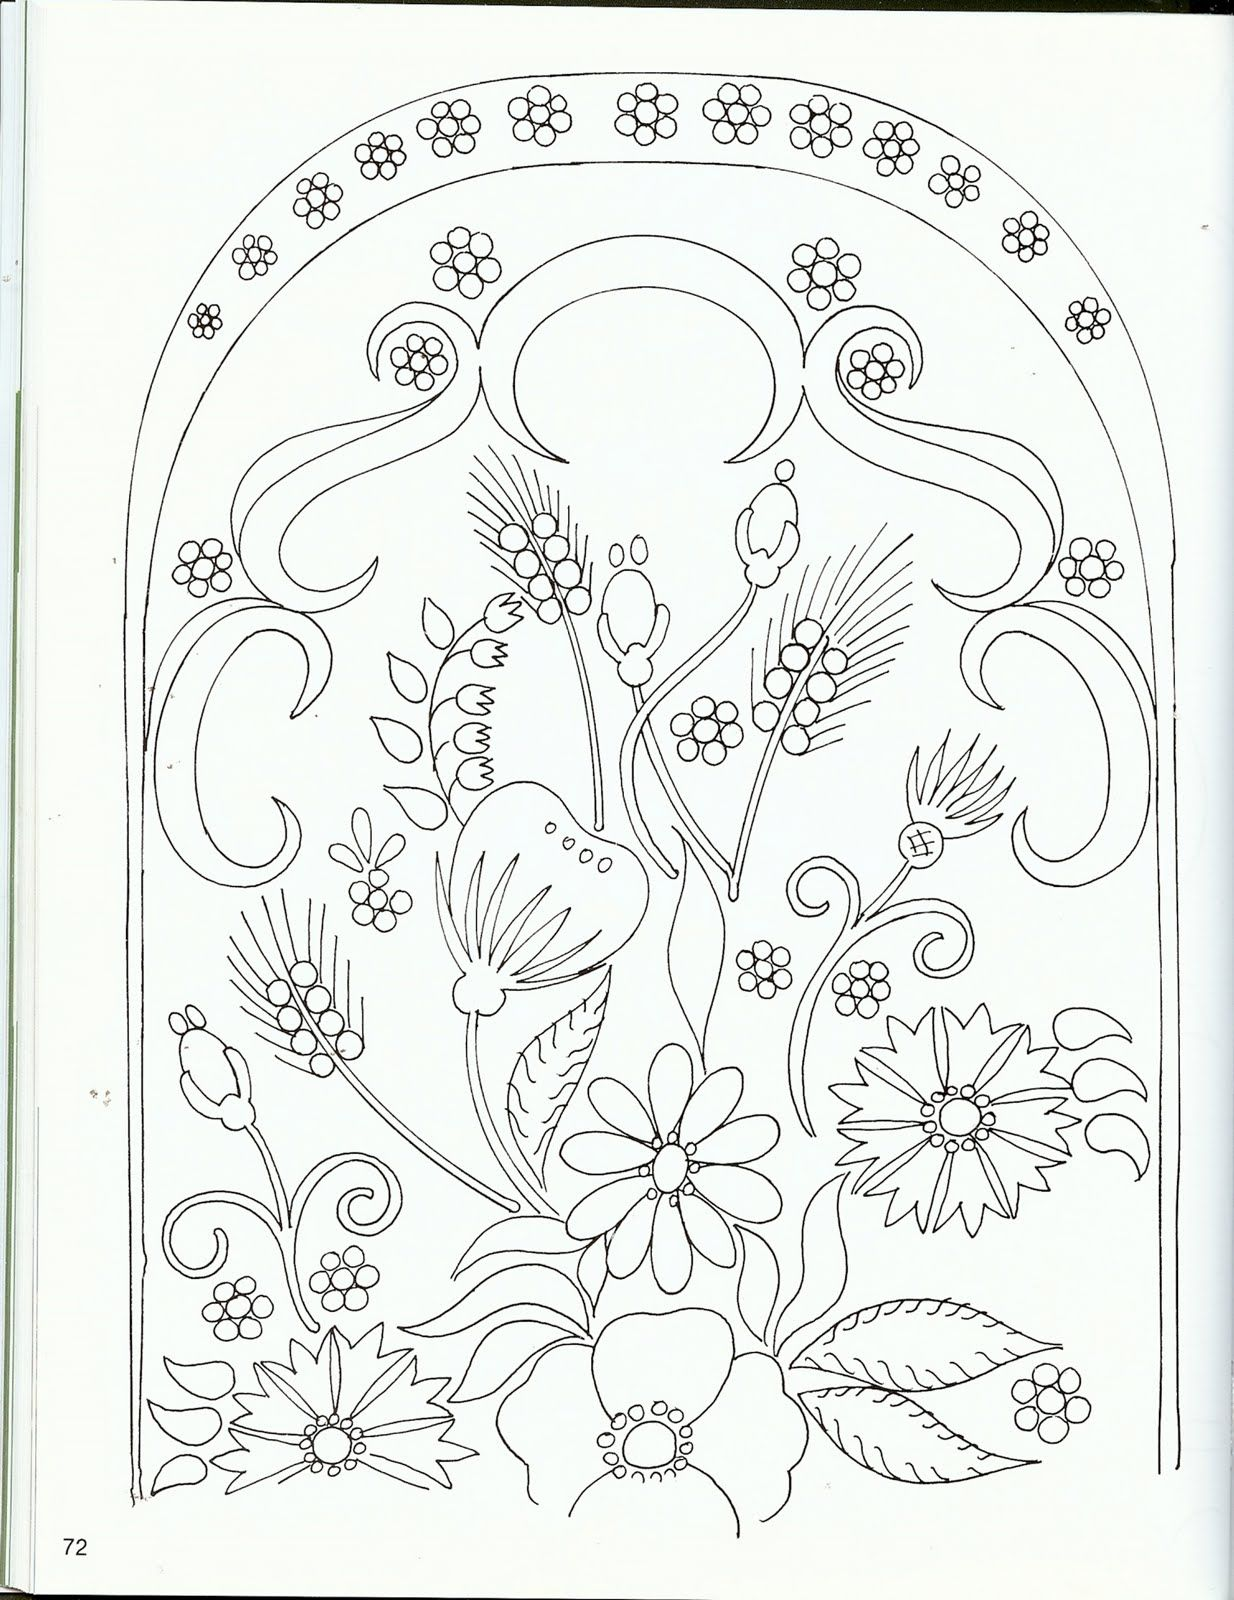 Flower arrangement line drawing | templates for crafts ...